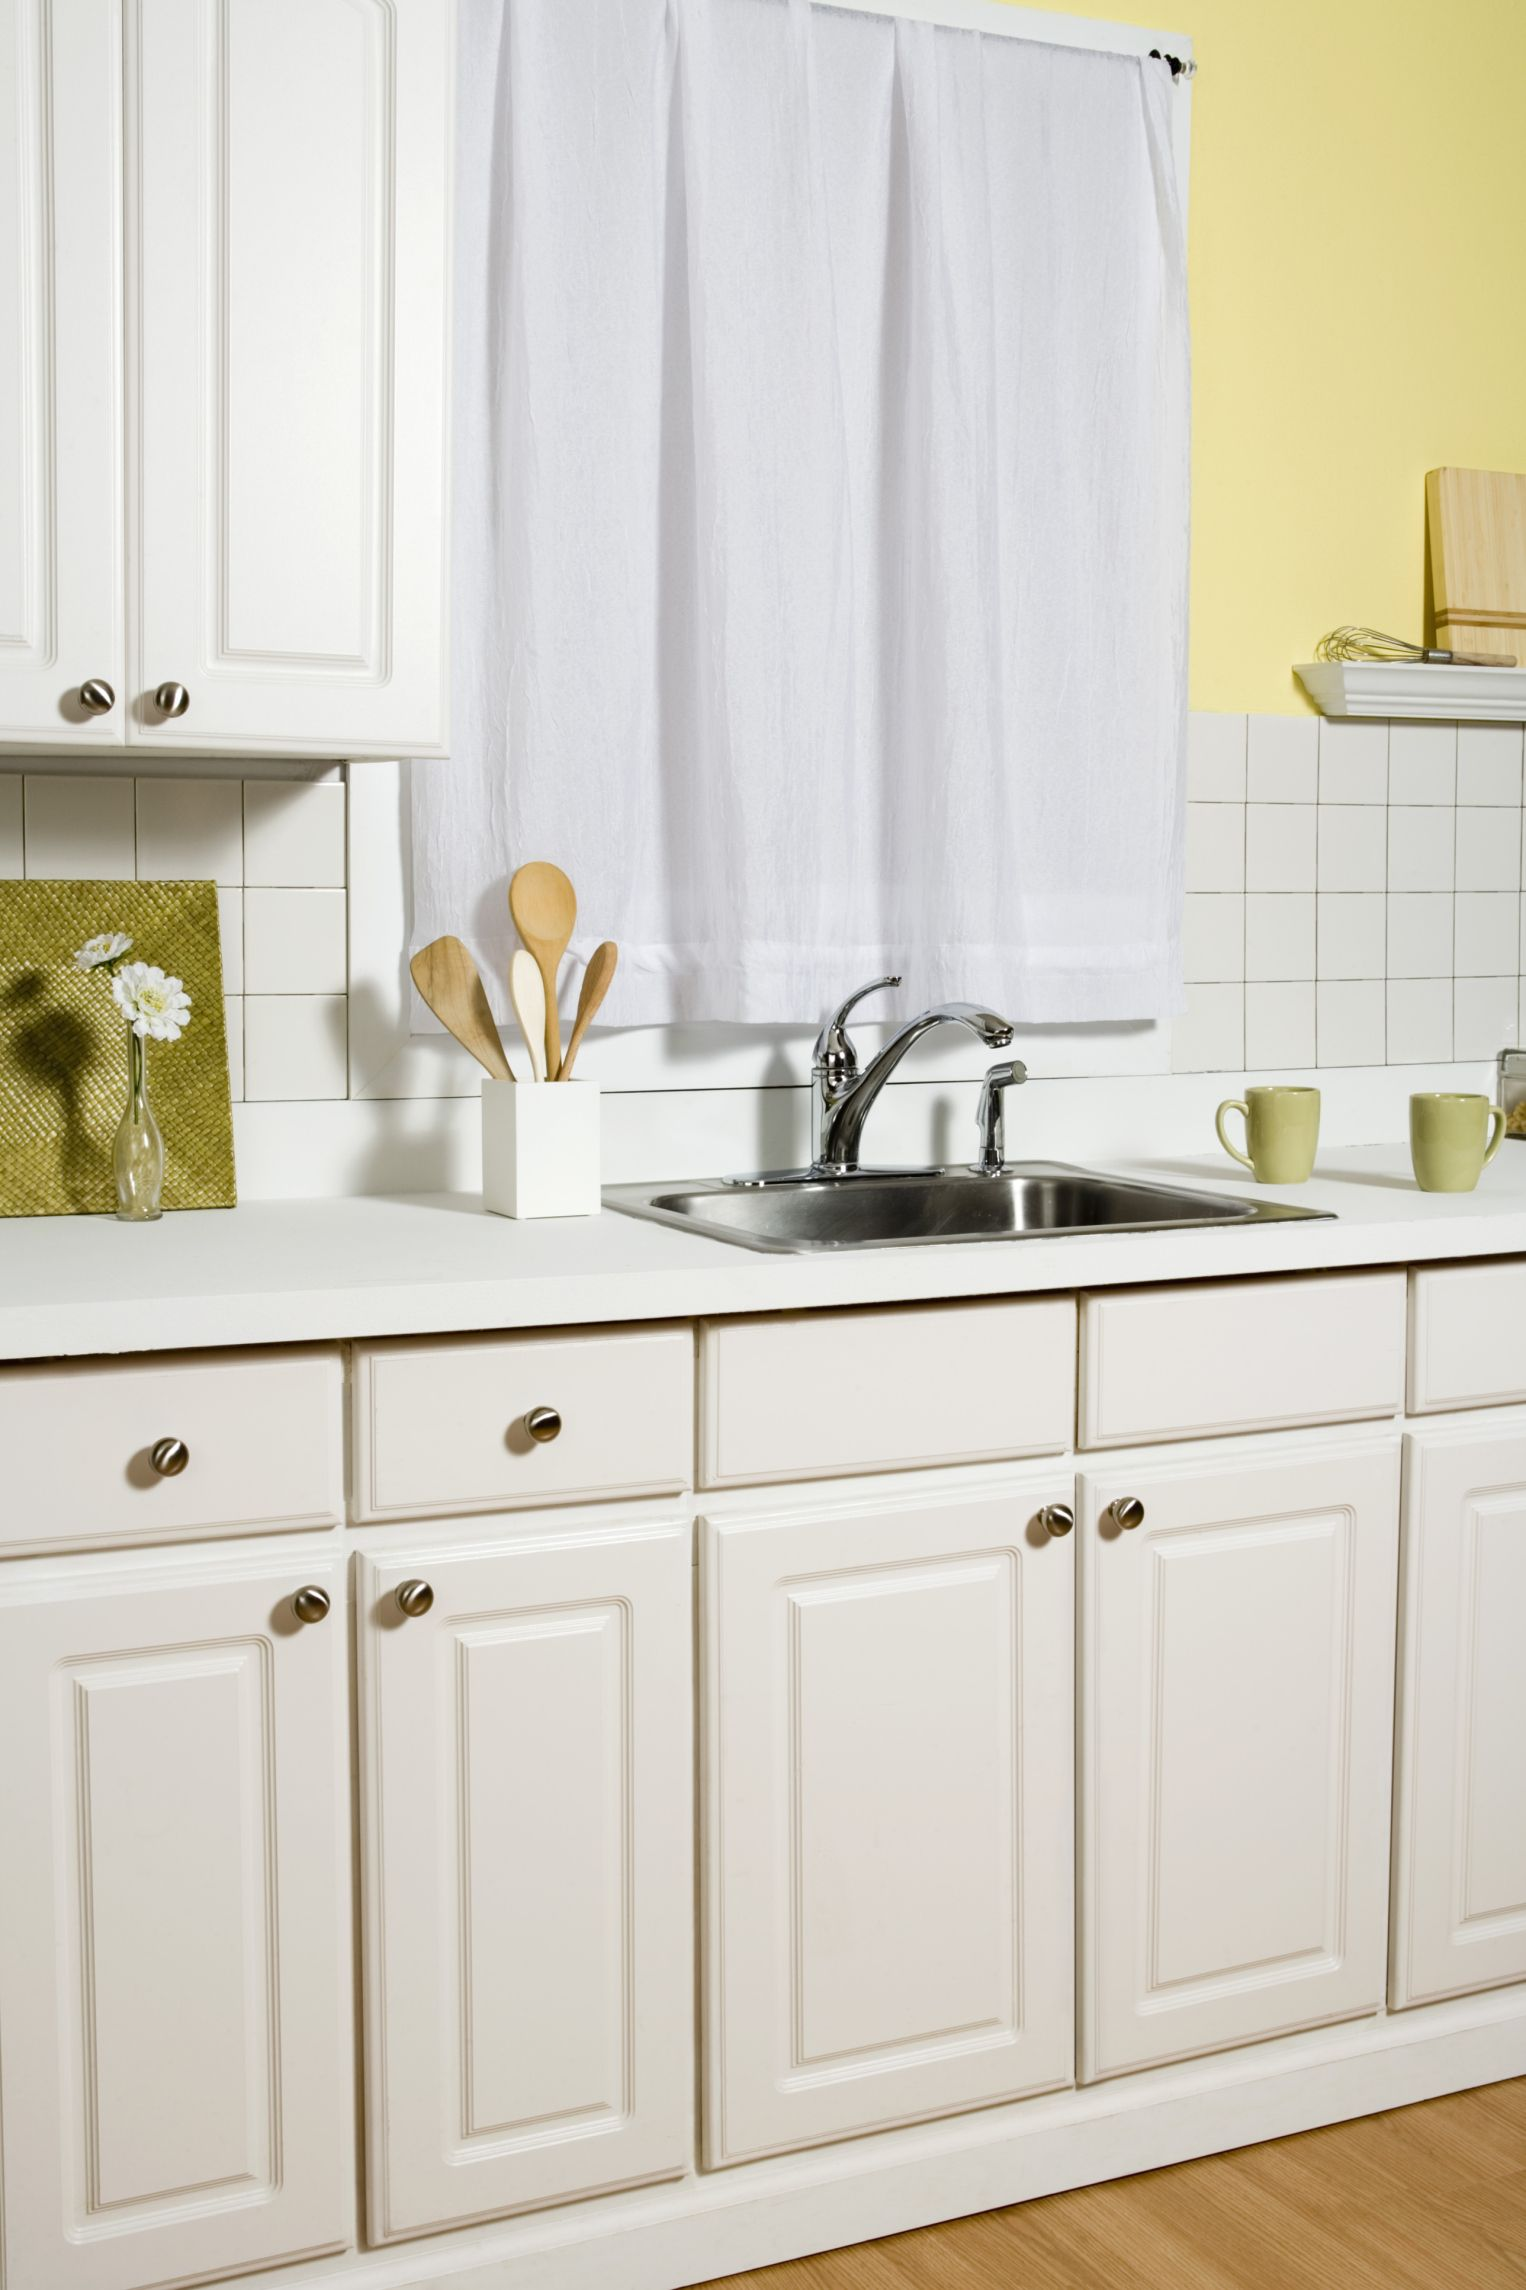 How To Paint Thermofoil Cabinets Thermofoil Cabinets Thermofoil Kitchen Cabinets Kitchen Cabinets Pictures